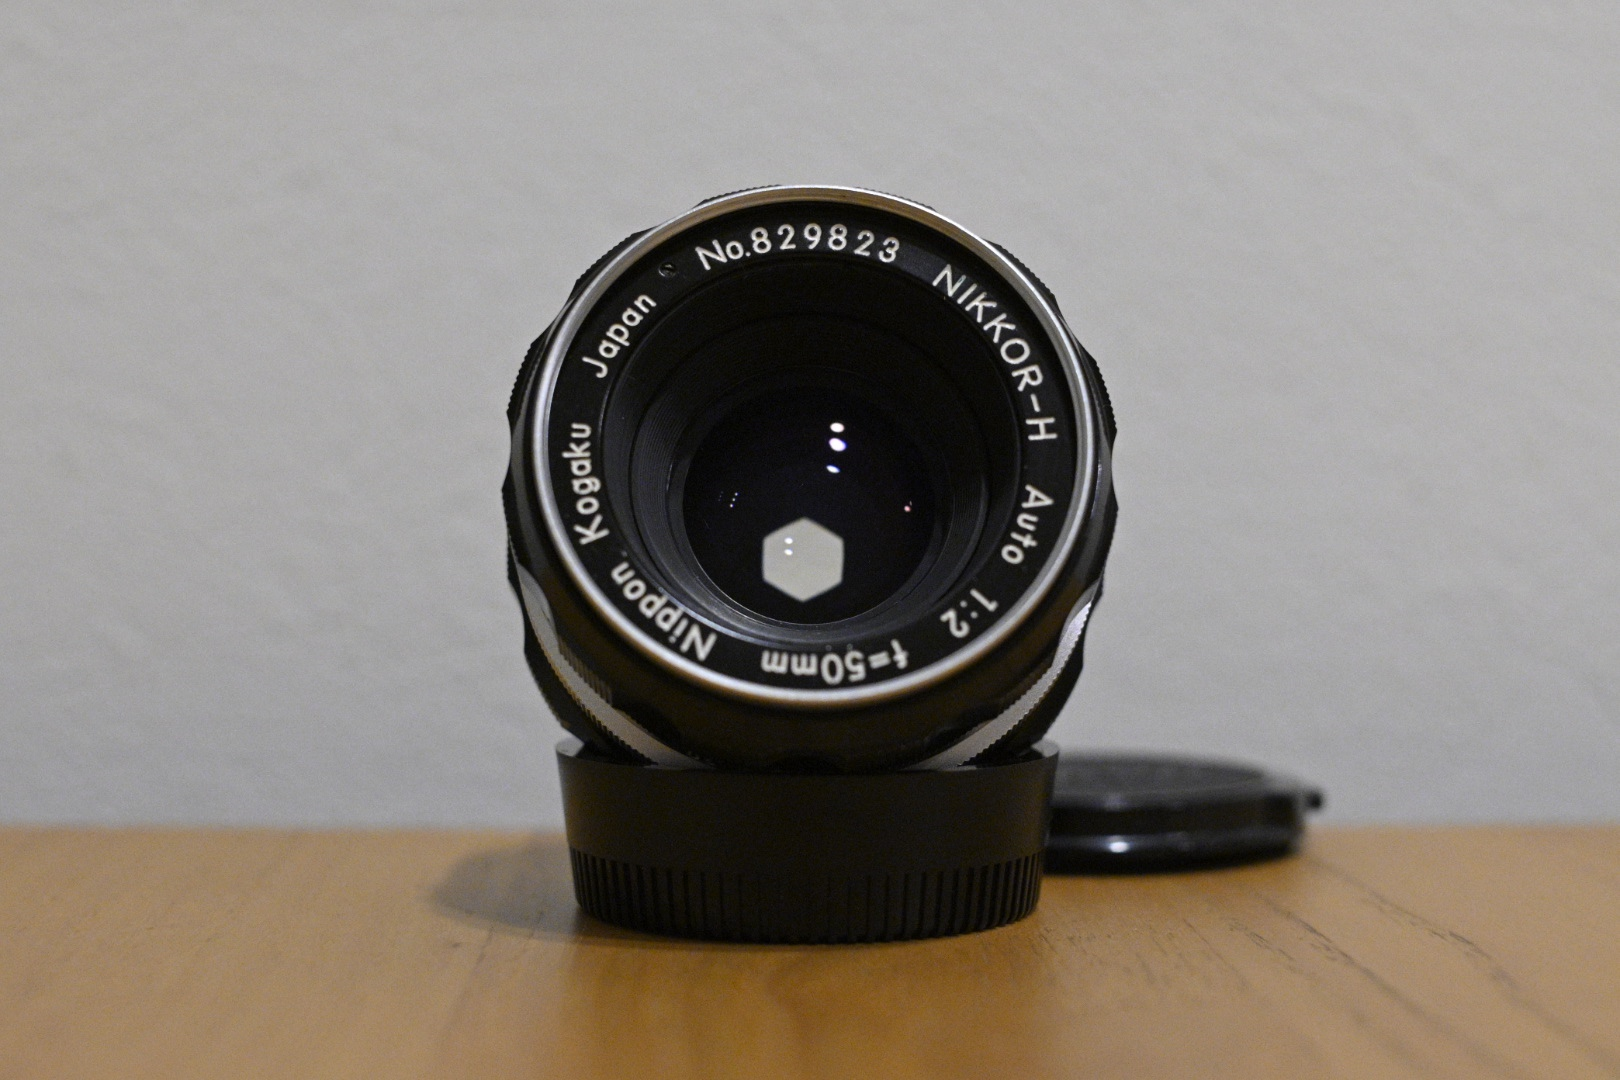 Nikkor-h-auto-50mm-f2-nikon-z50-old-lens-review-1